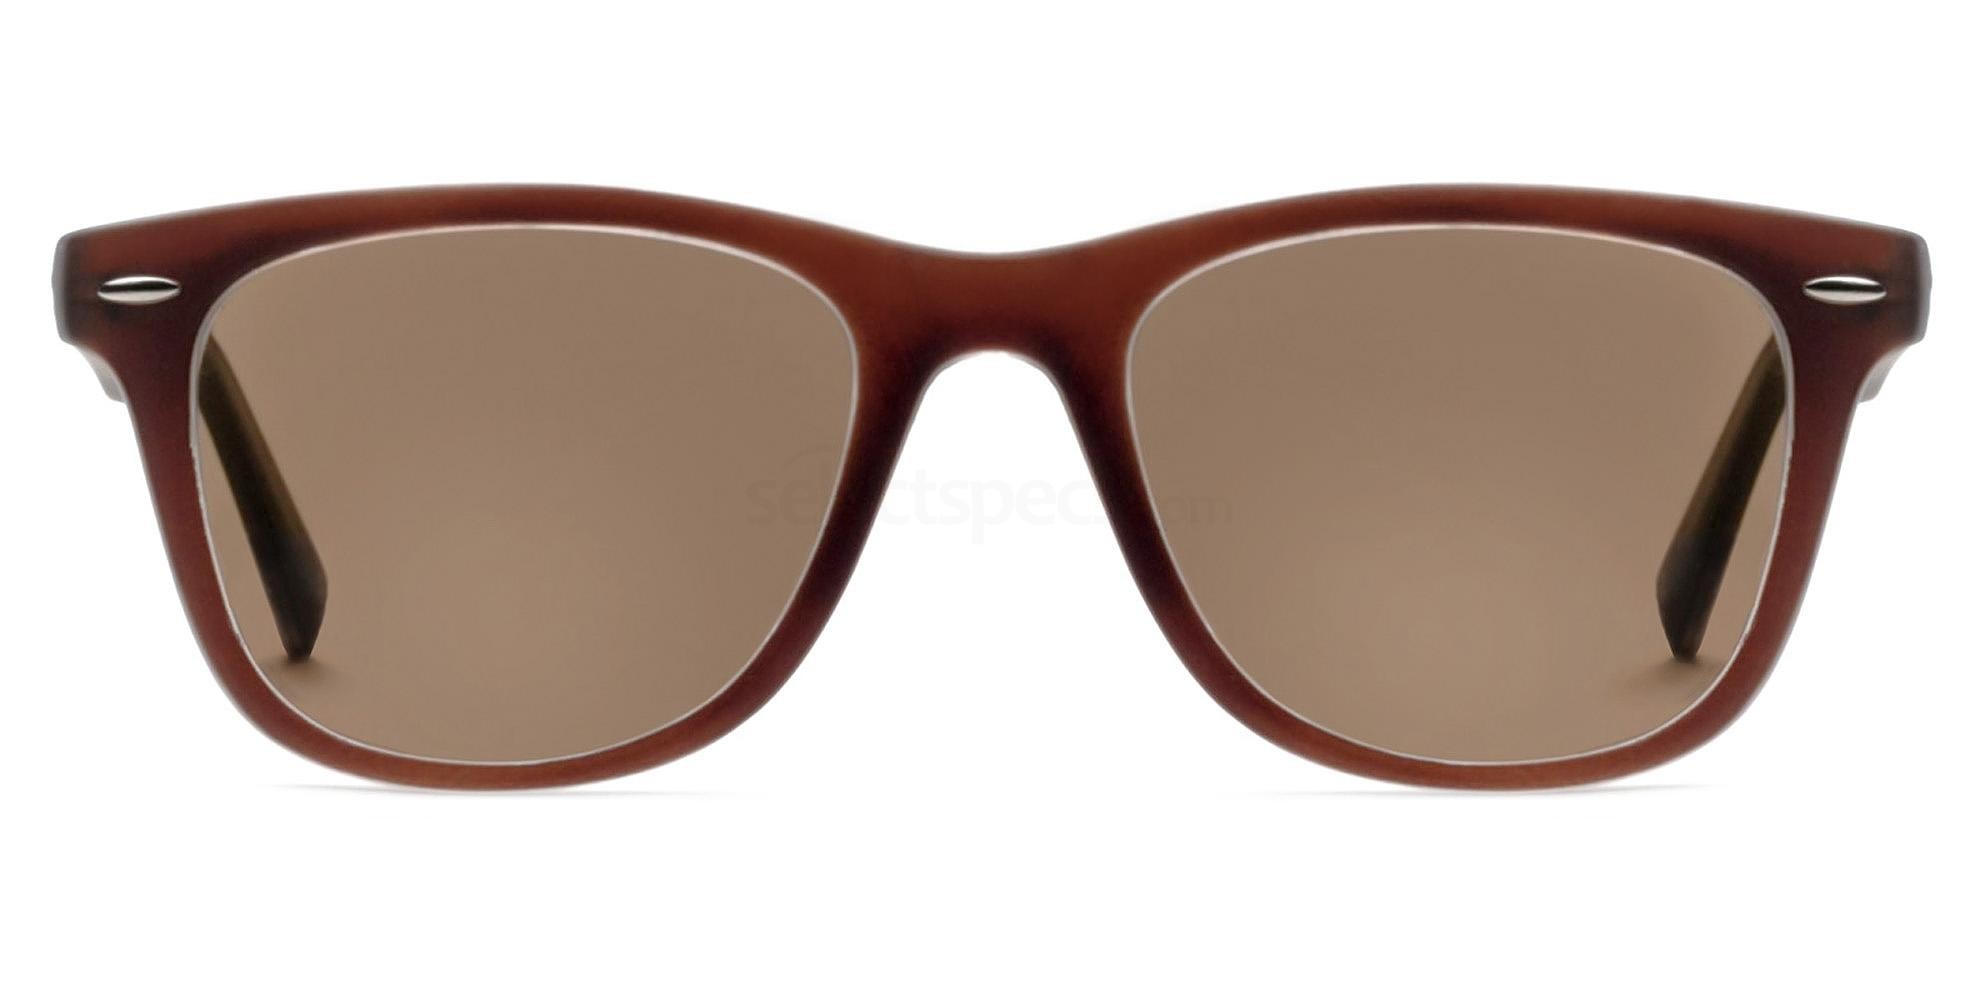 C8 8121 - Brown (Sunglasses) Sunglasses, Savannah